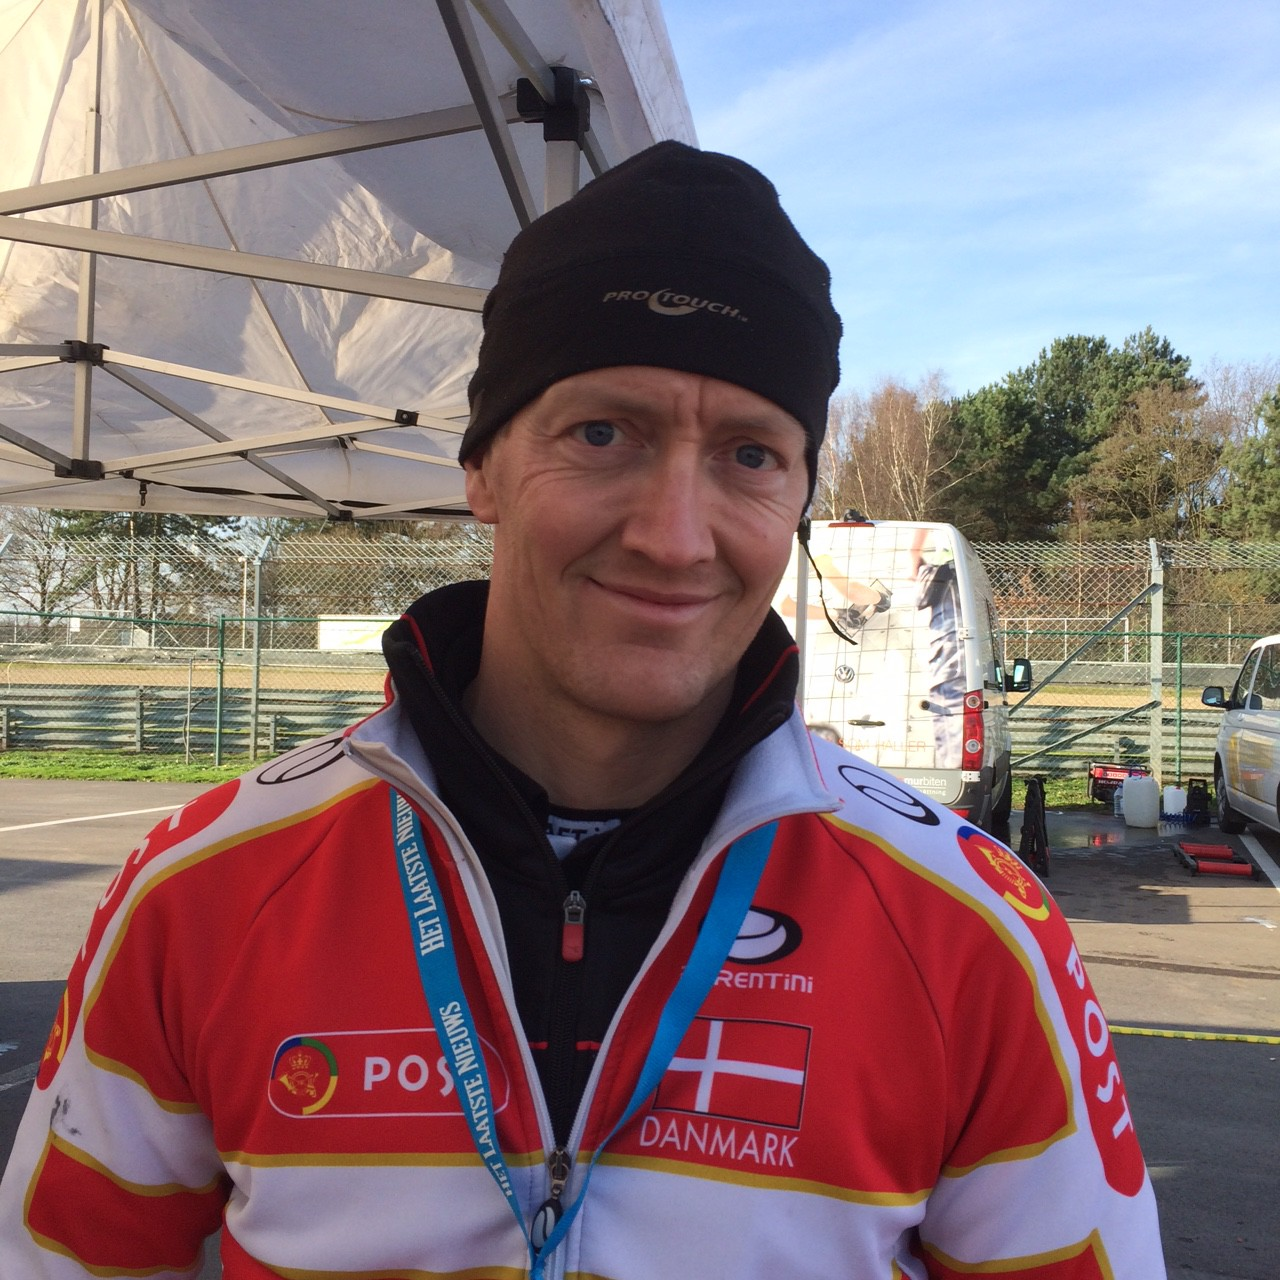 Interview with Kim Petterson, coach of the Danish team